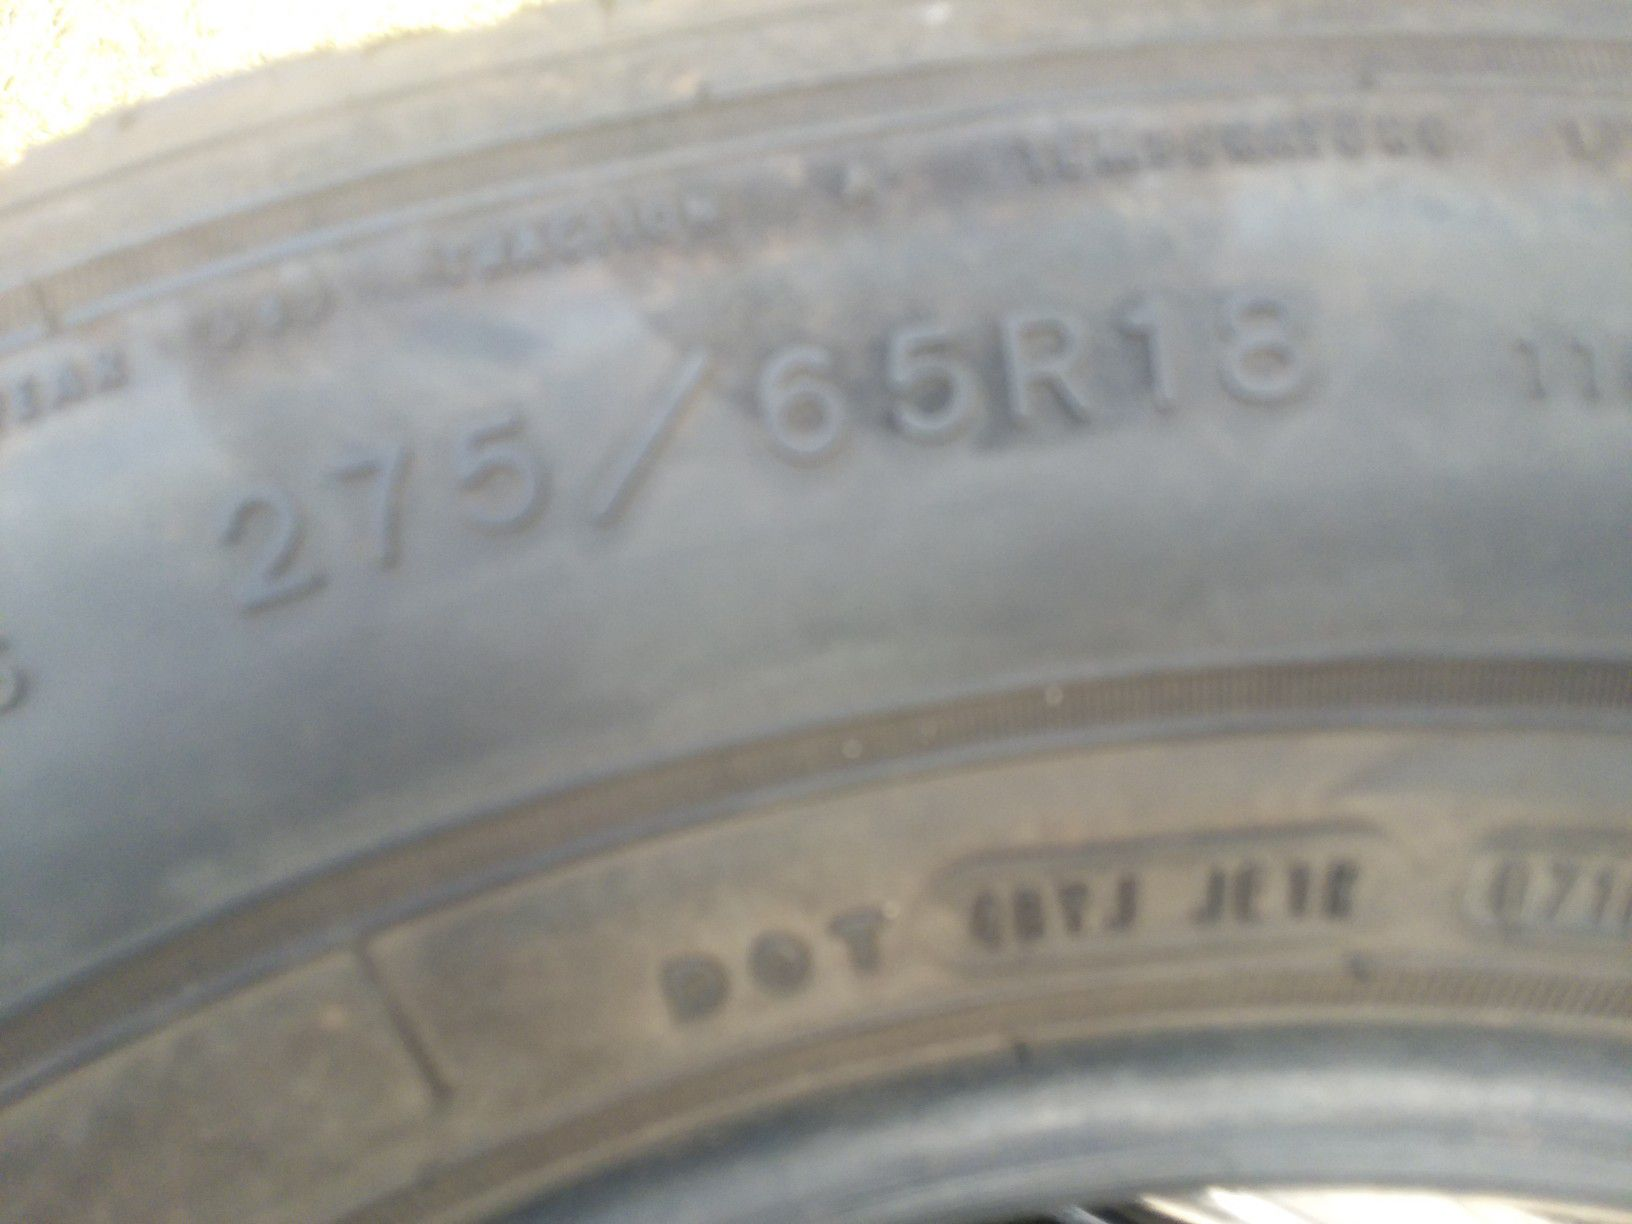 Goodyear tires all the same call {contact info removed}